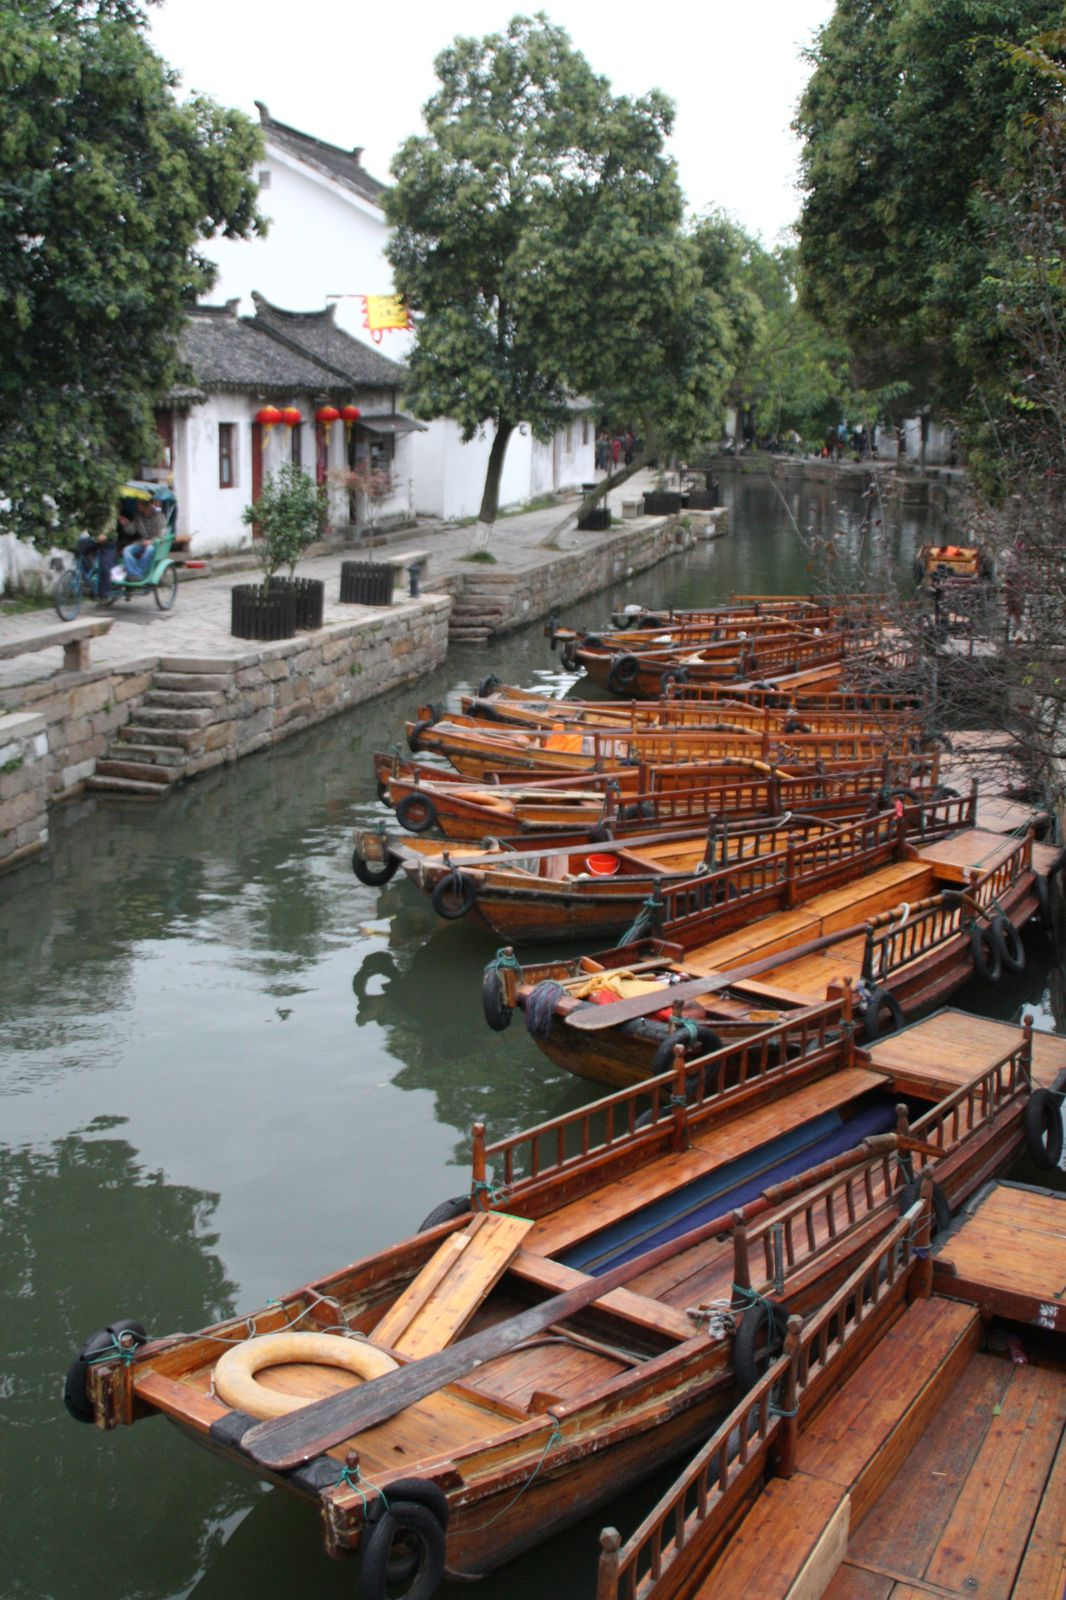 ALBUM - CHINE 2010 : SUZHOU et TONGLI